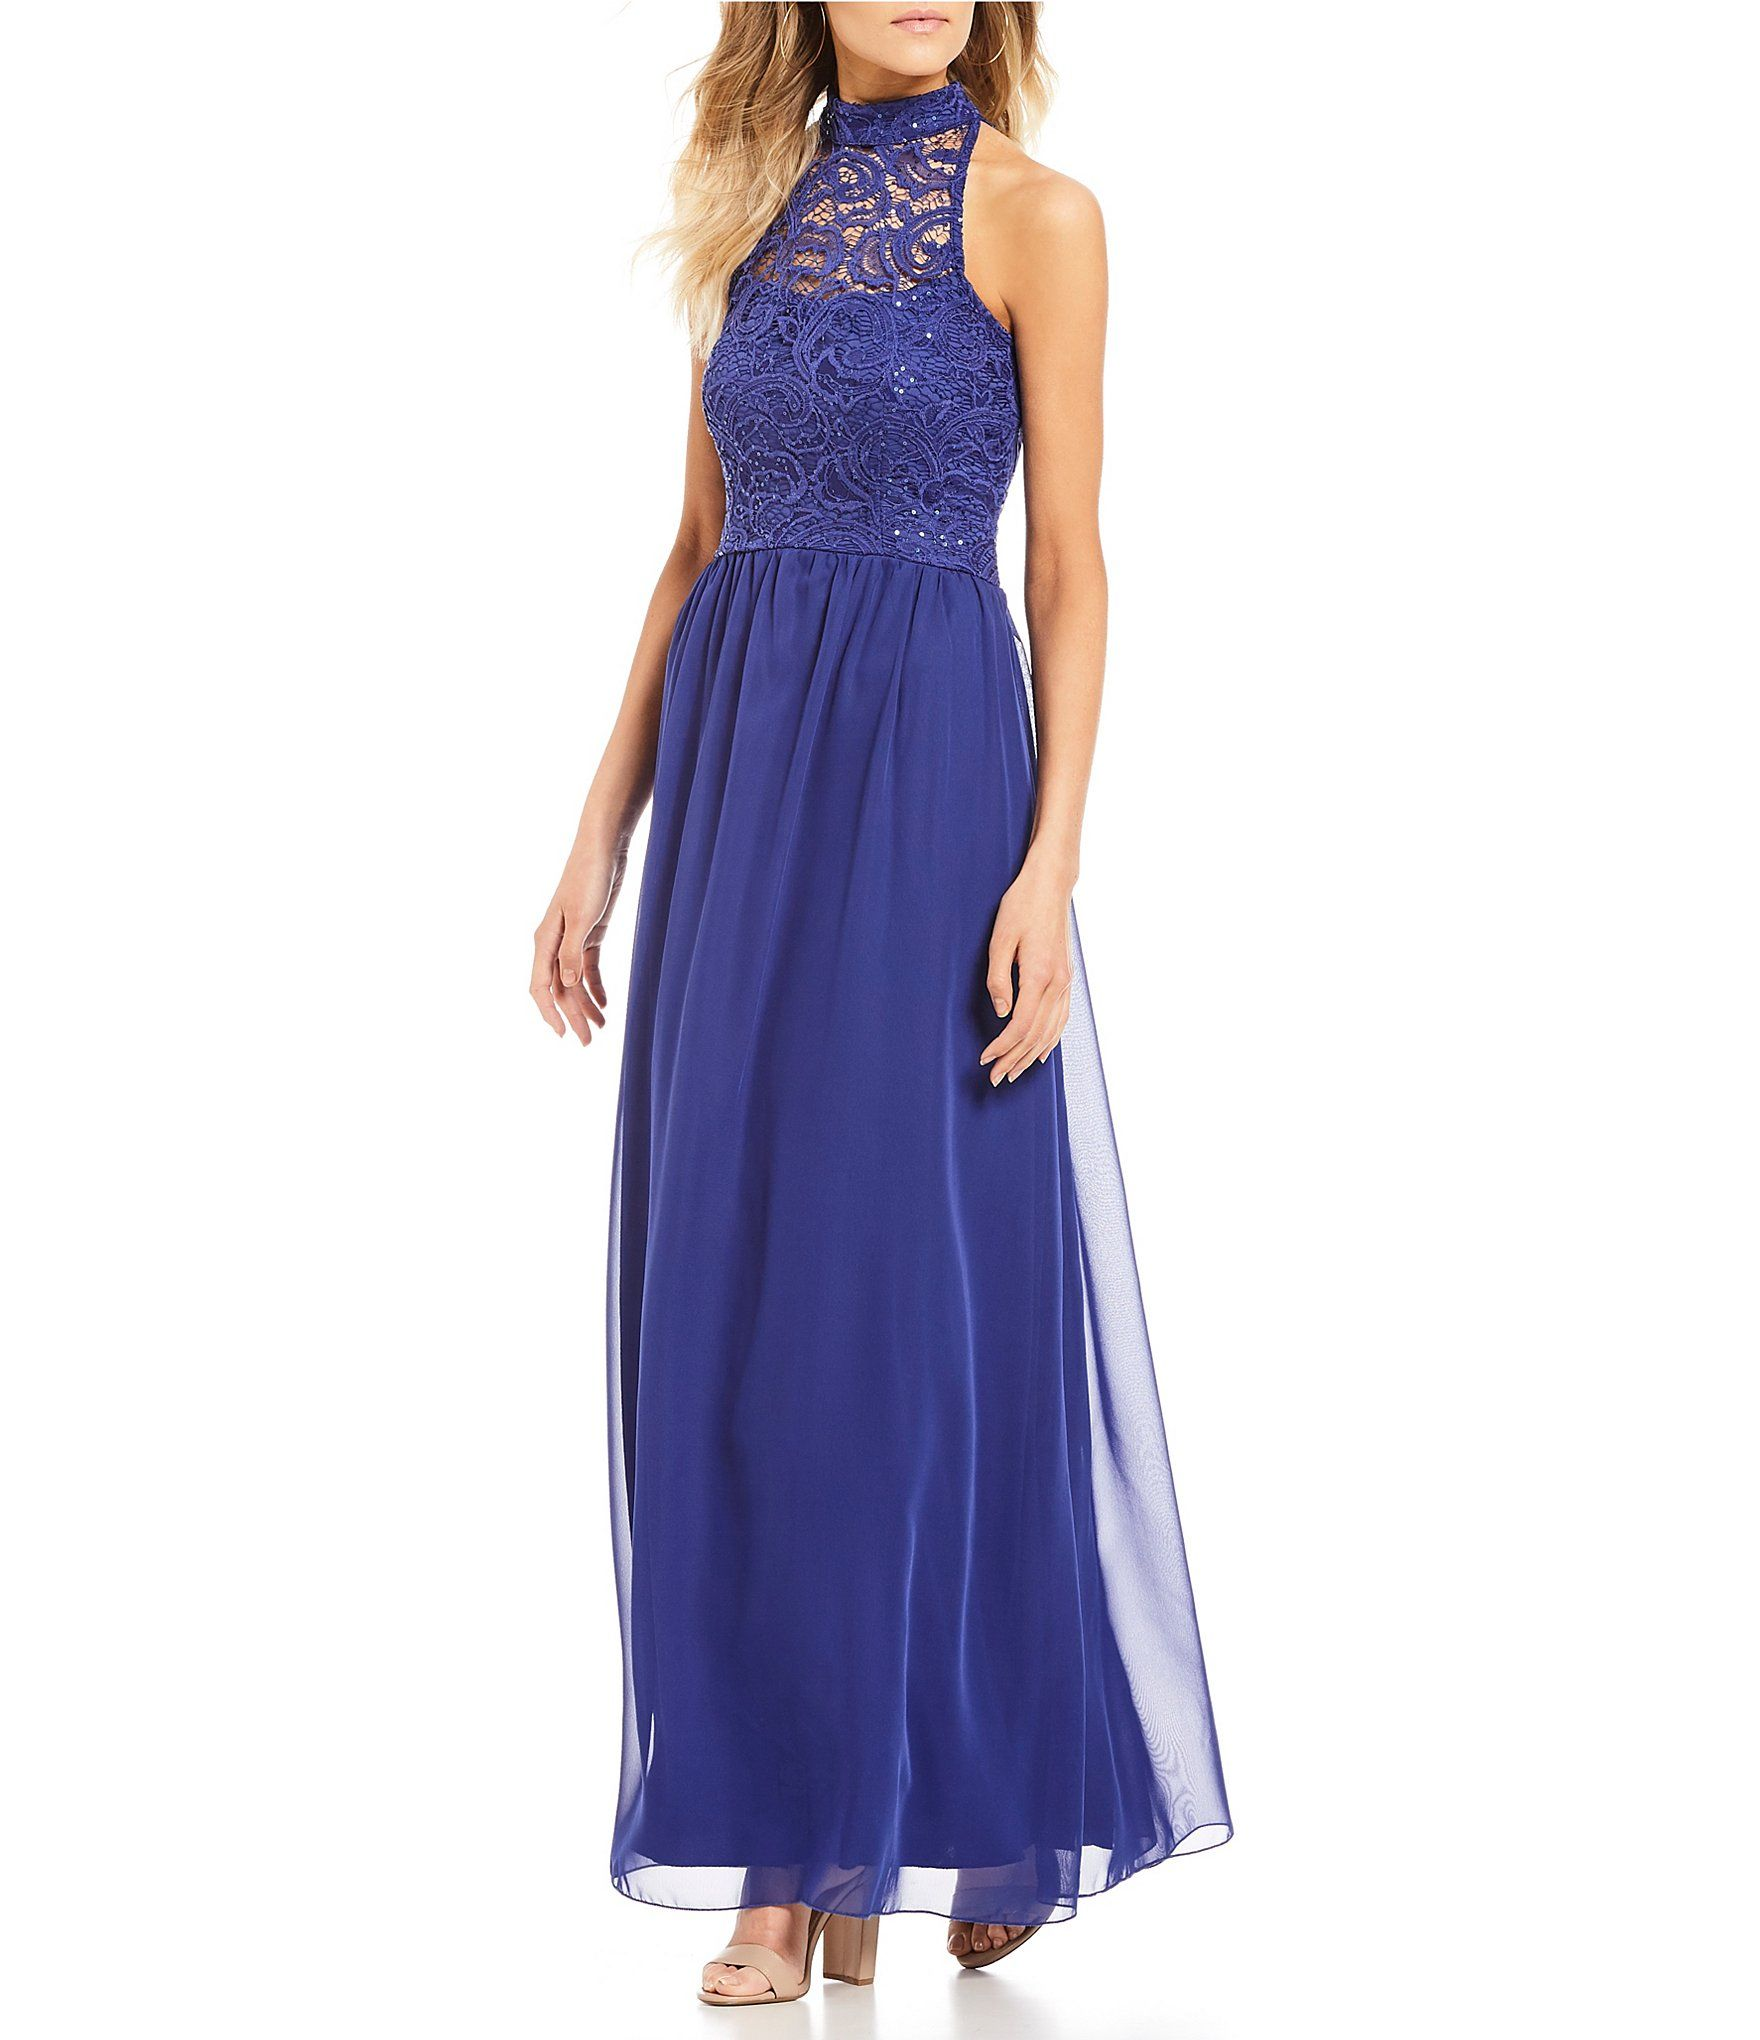 Xtraordinary Sequin Lace Bodice Long Dress | Lace bodice, Dillards ...